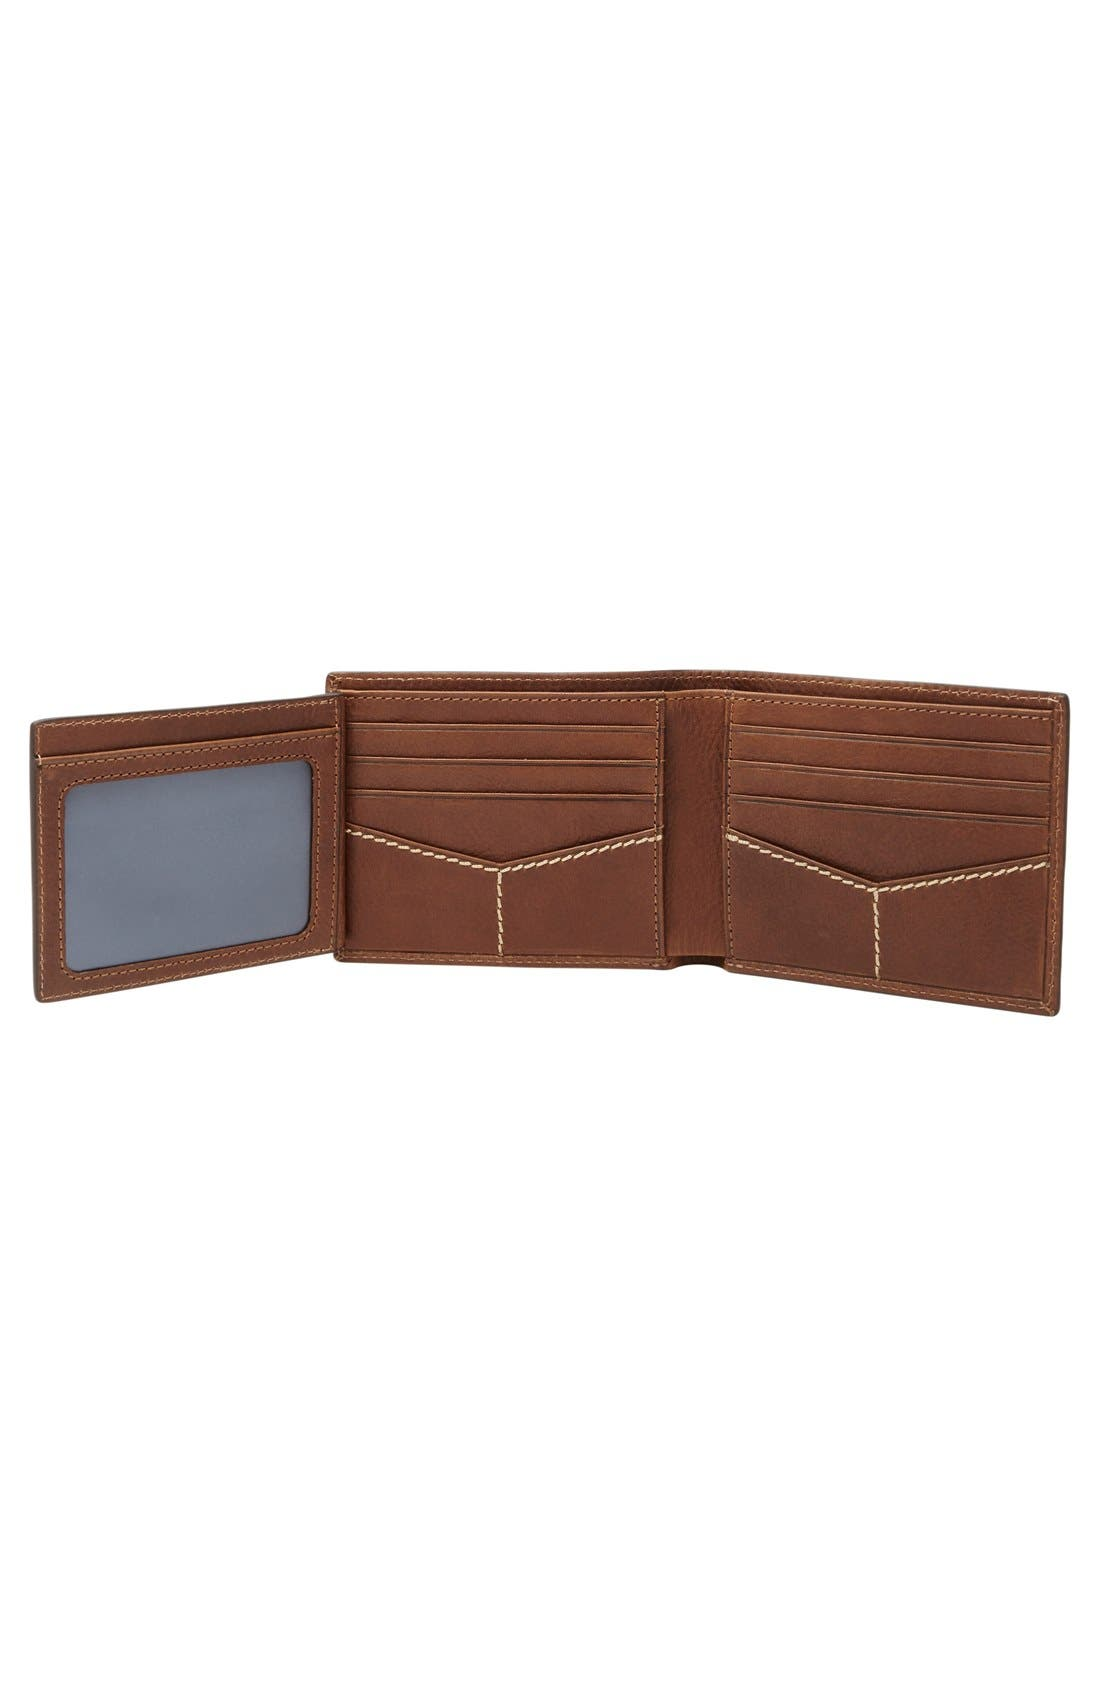 'Turk' Leather RFID Wallet,                             Alternate thumbnail 3, color,                             Brown